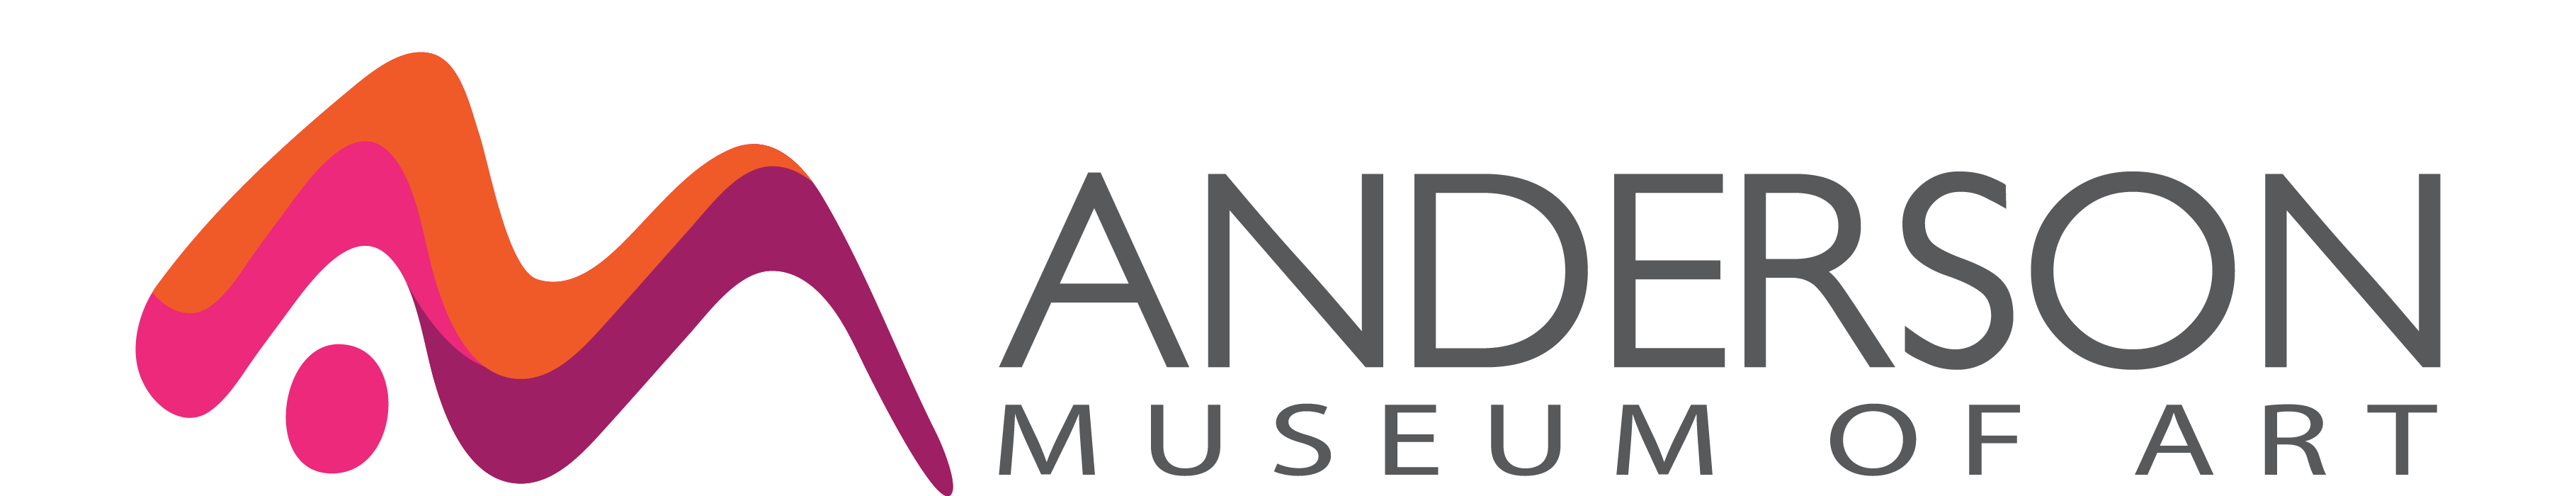 Anderson Museum of art-01